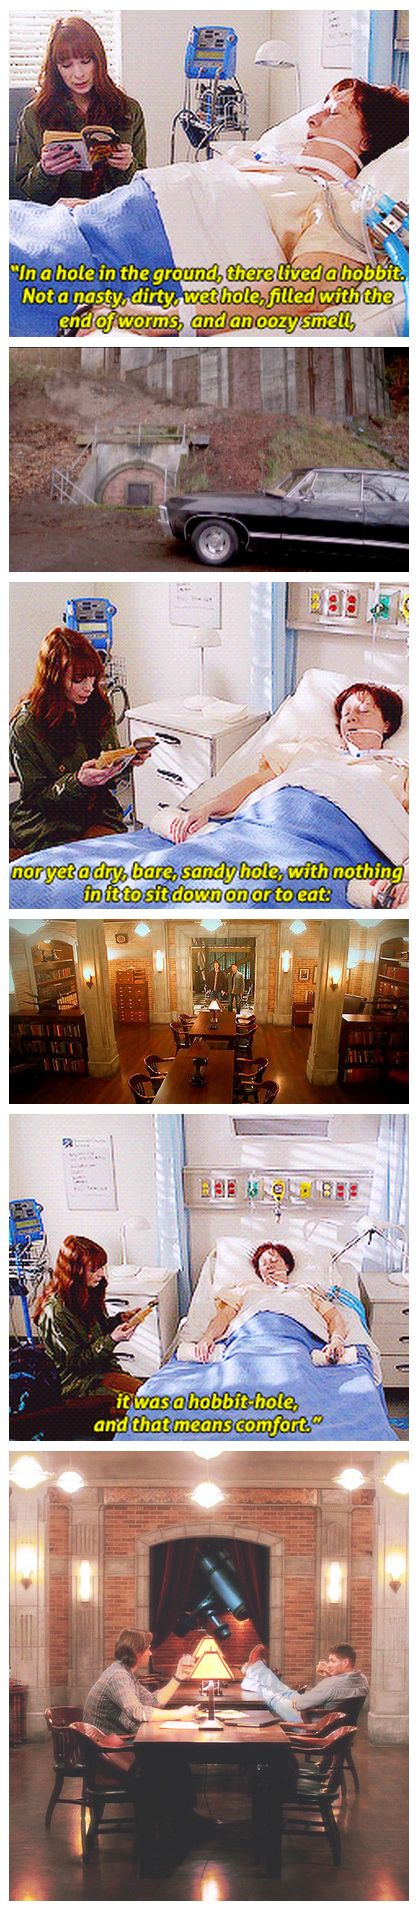 [gif-set] The Bunker. <3 Thank you, kind soul who made this I sobbed at this episode